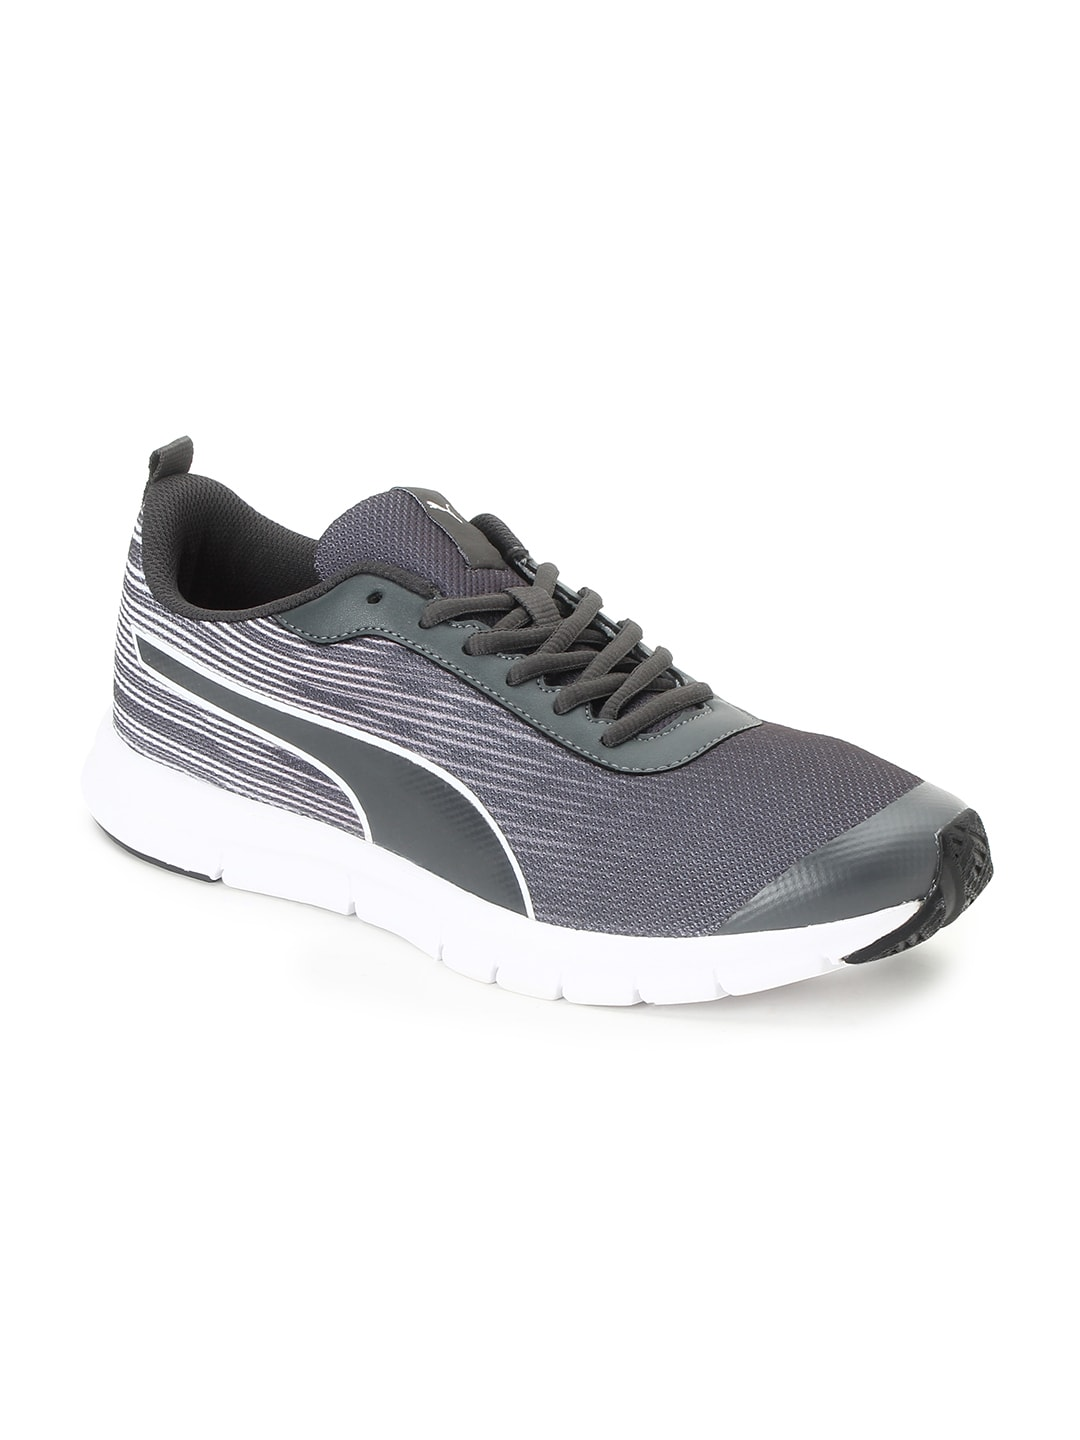 8766a34ecaec Puma Men Grey Sneakers